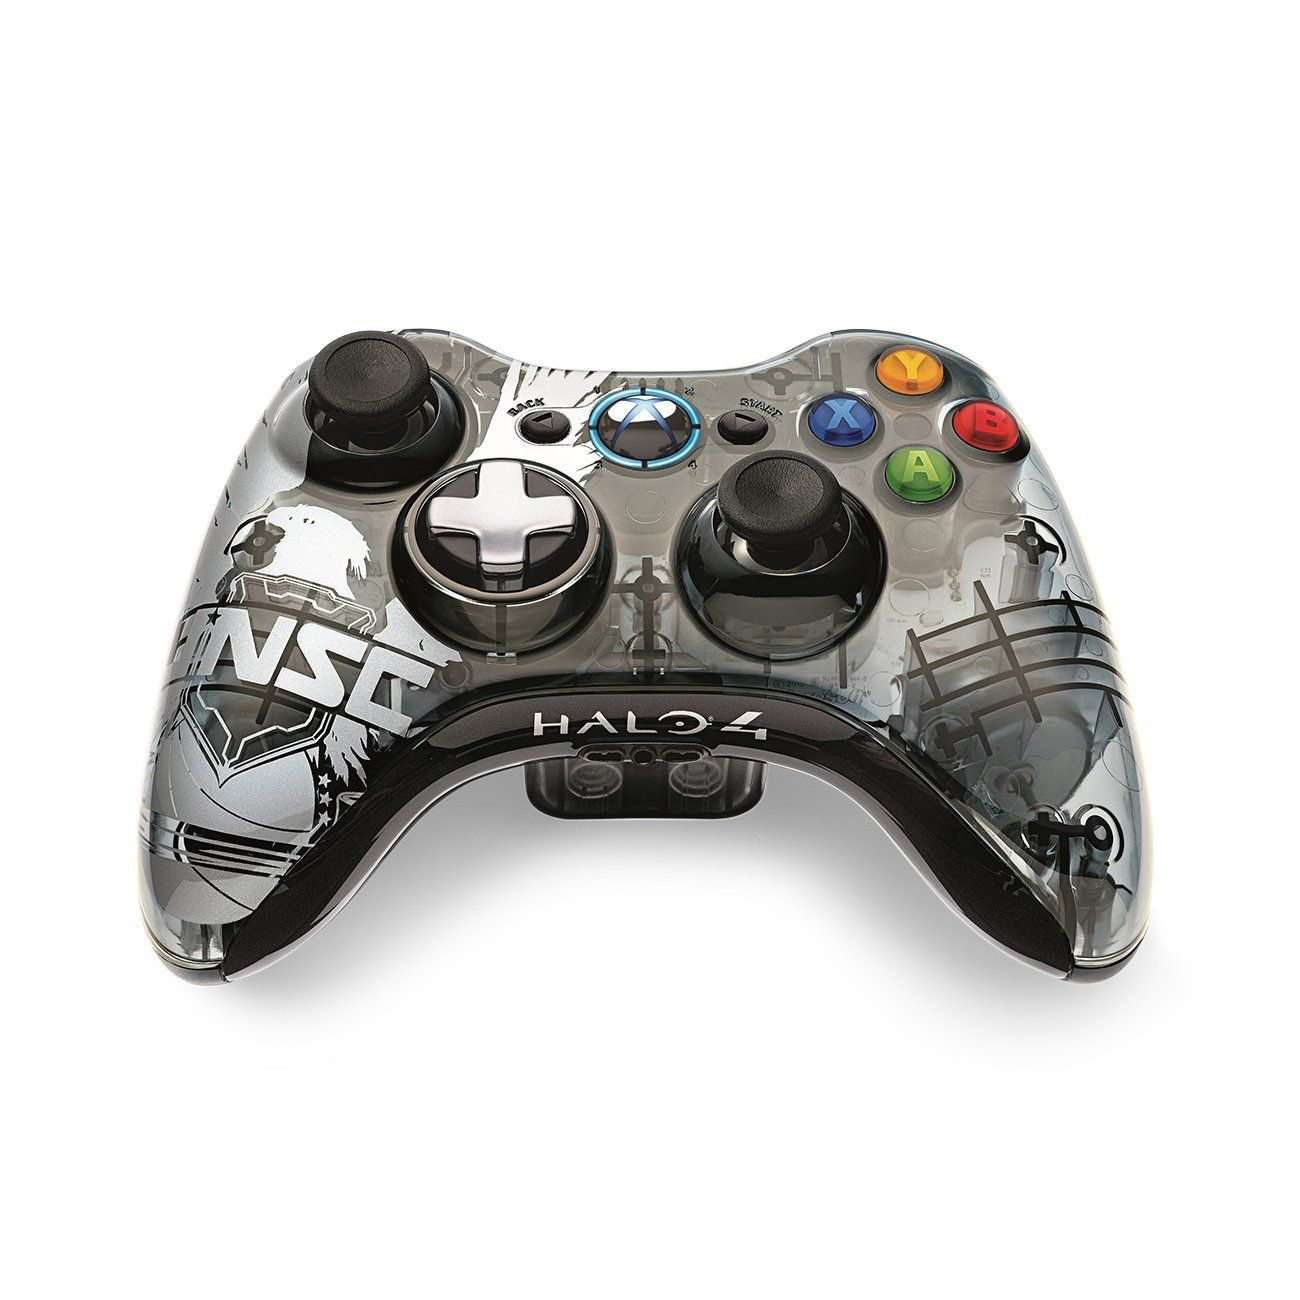 Xbox 360 halo 4 limited edition wireless controller video games xbox 360 halo 4 limited edition wireless controller video games ccuart Images